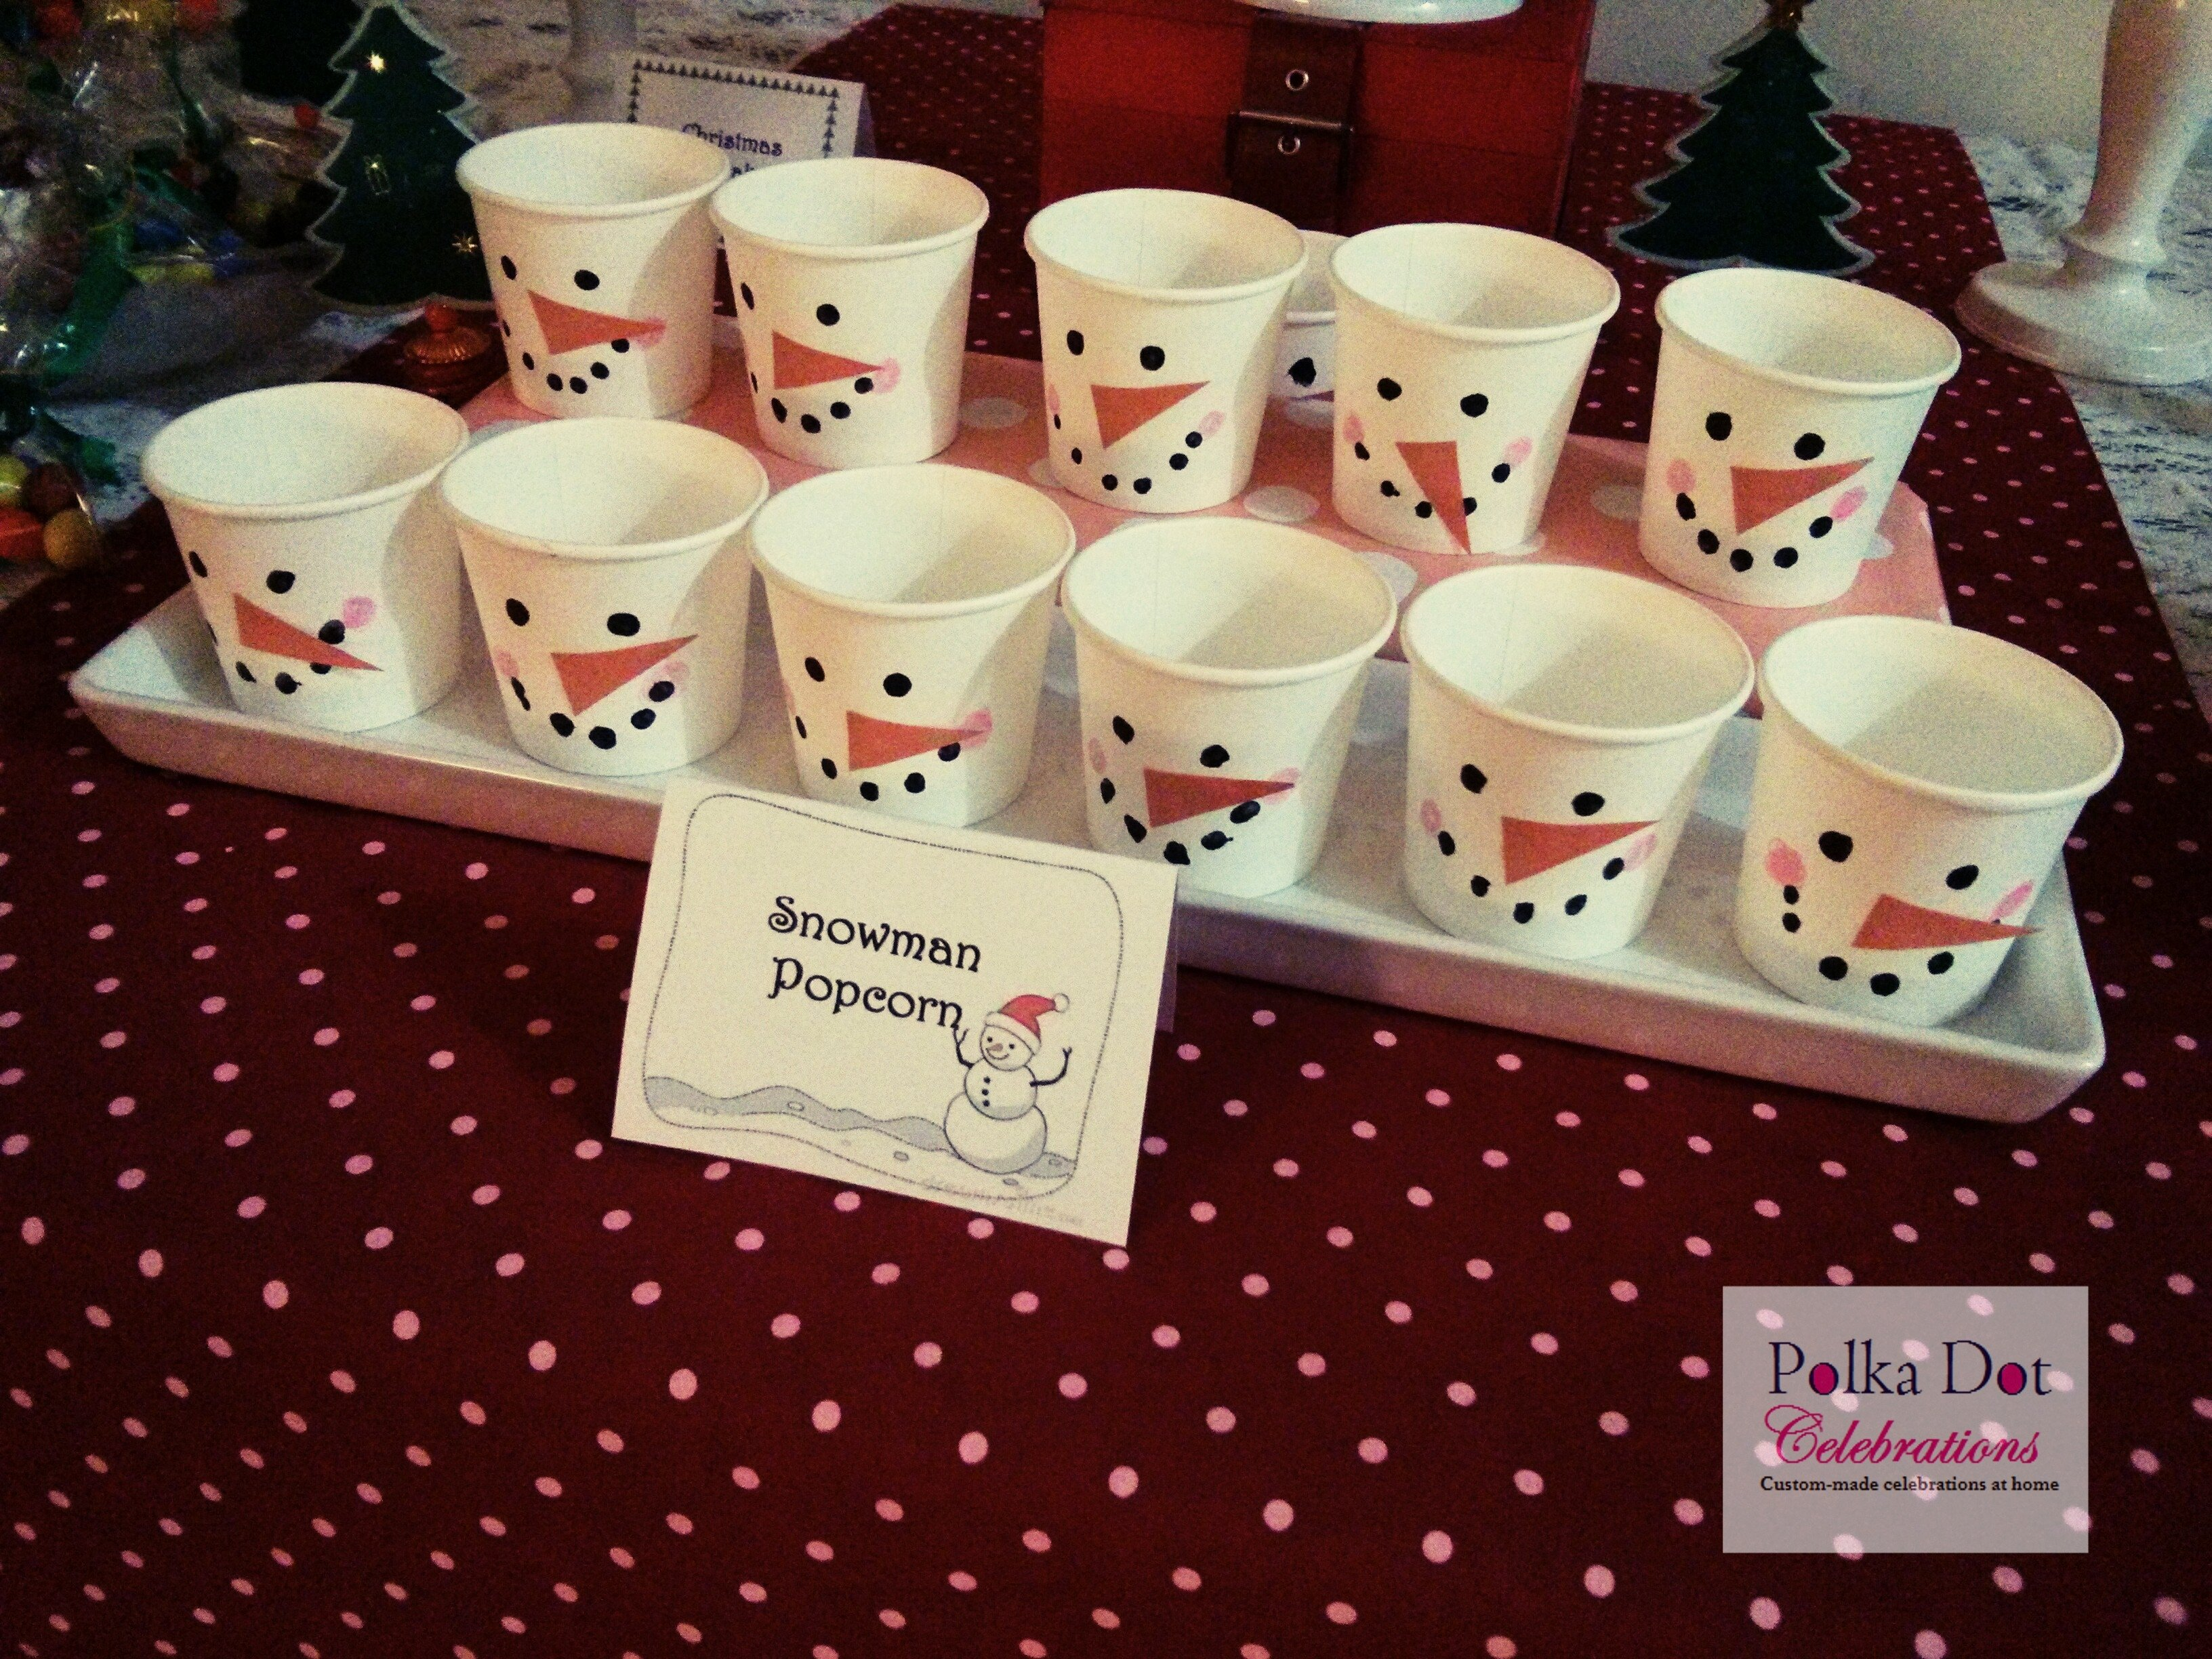 10 Cute Holiday Party Ideas For Kids garage marshmallow for candy photo crissy crafts homemade party 2020